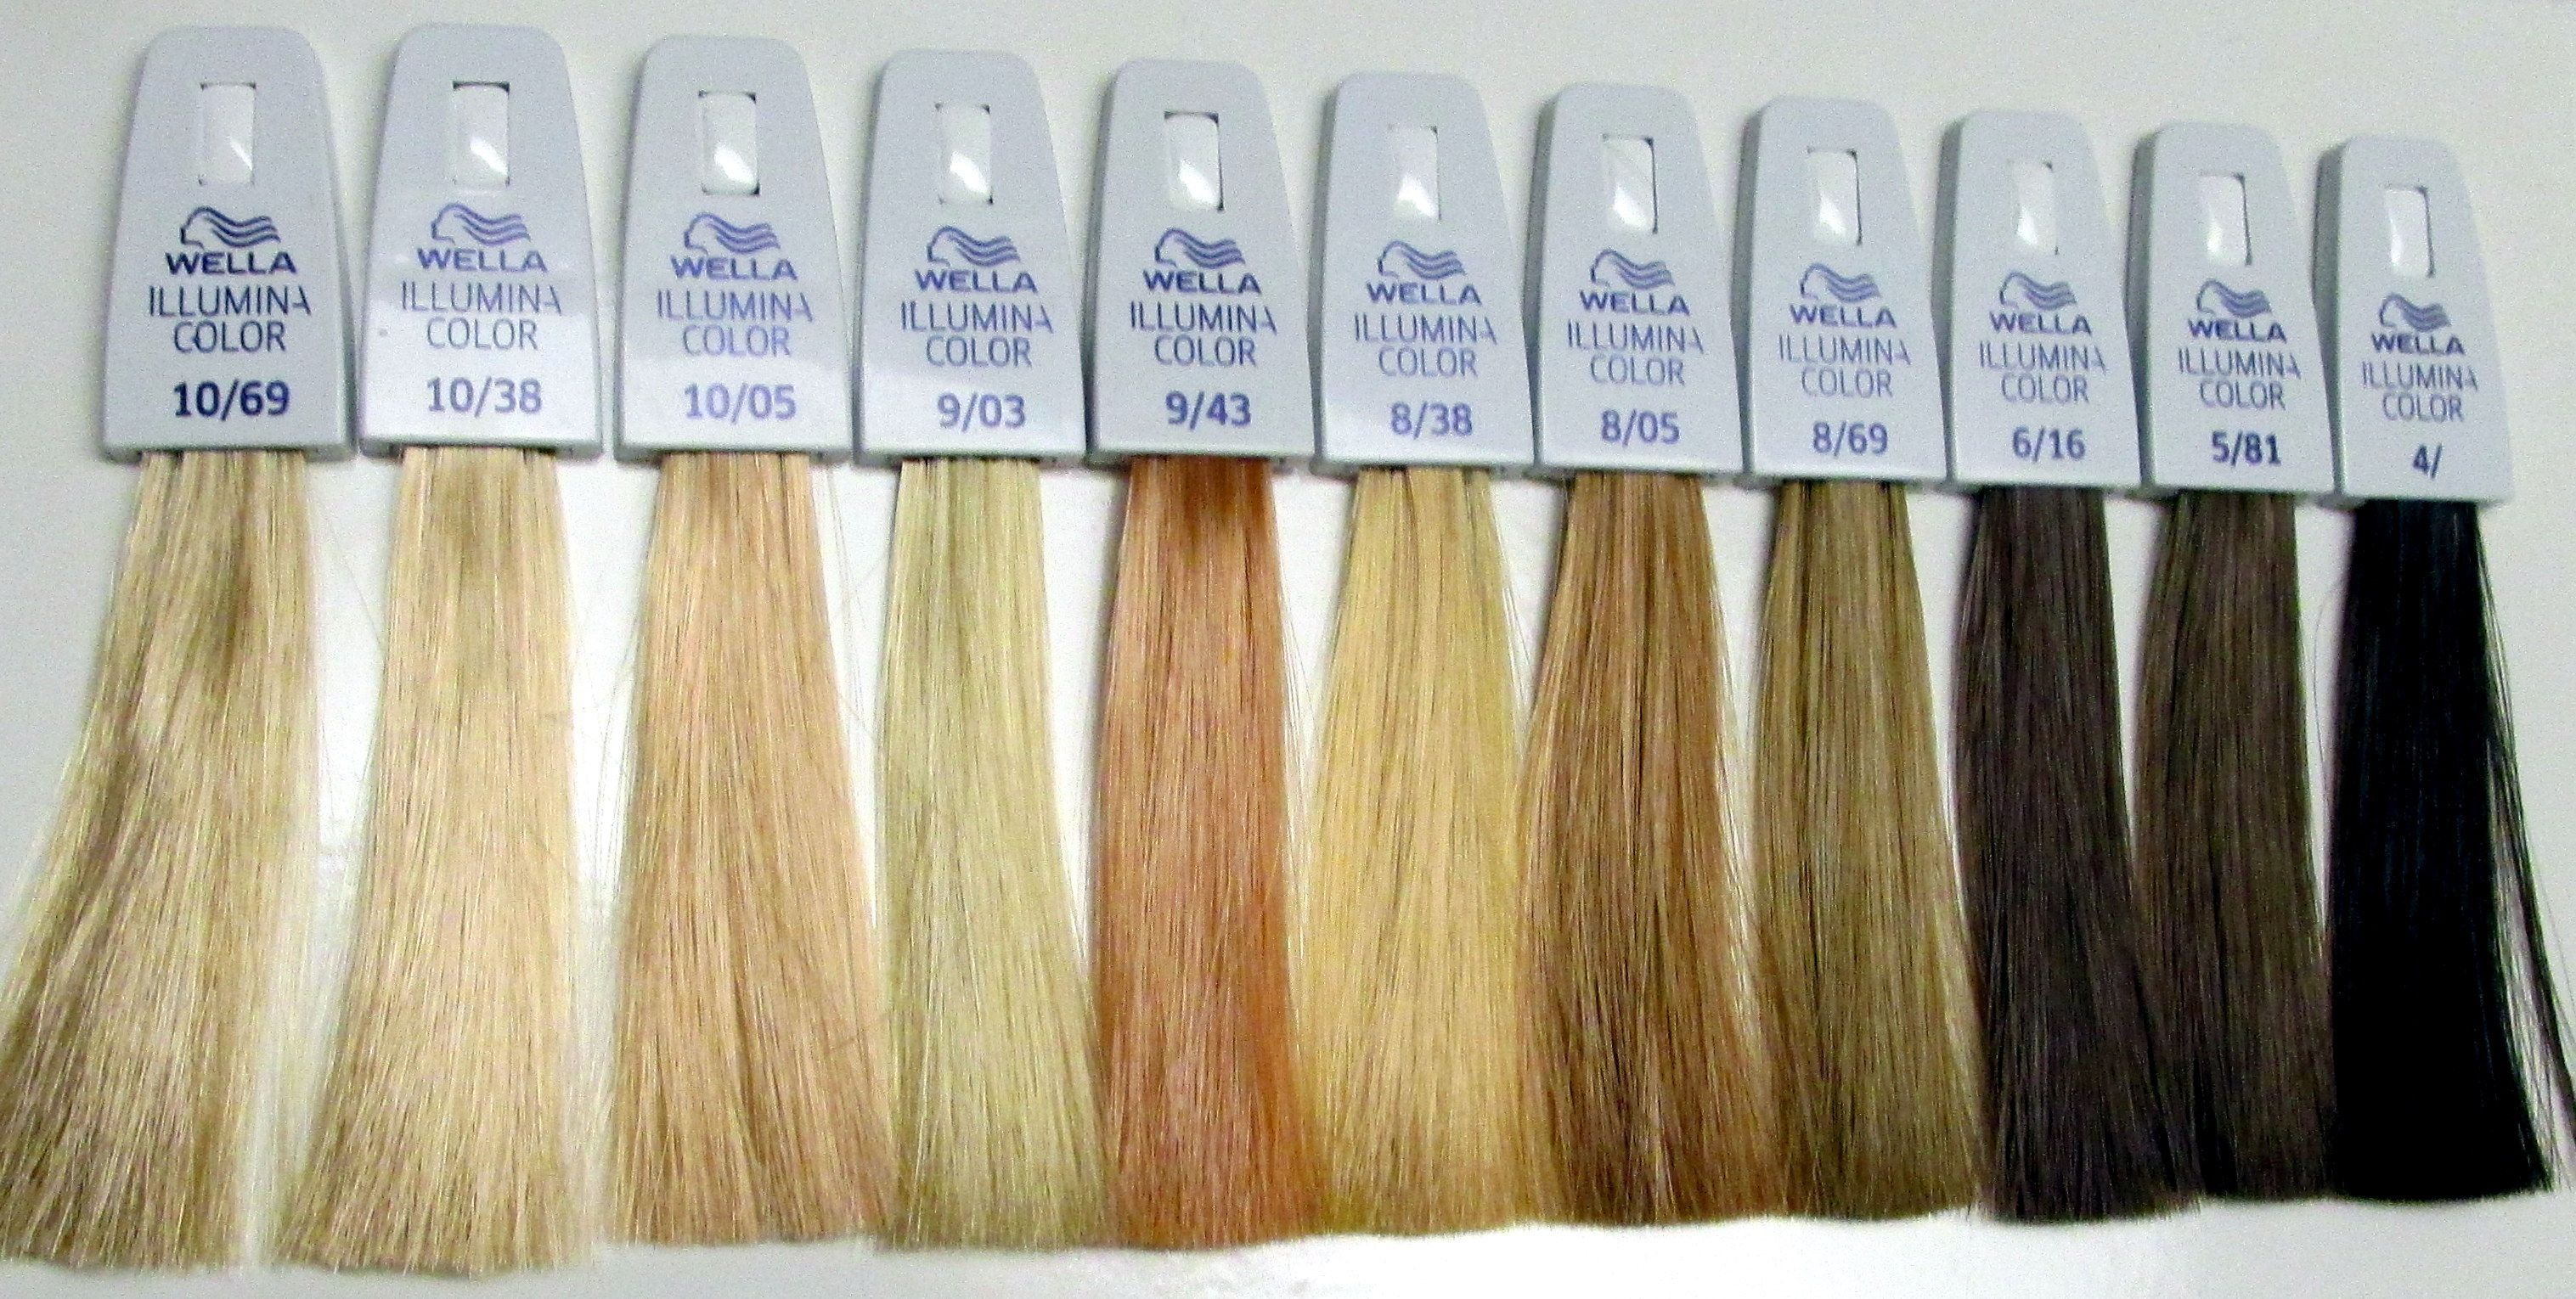 Wellas Illumina Hair Color works in a different method than all